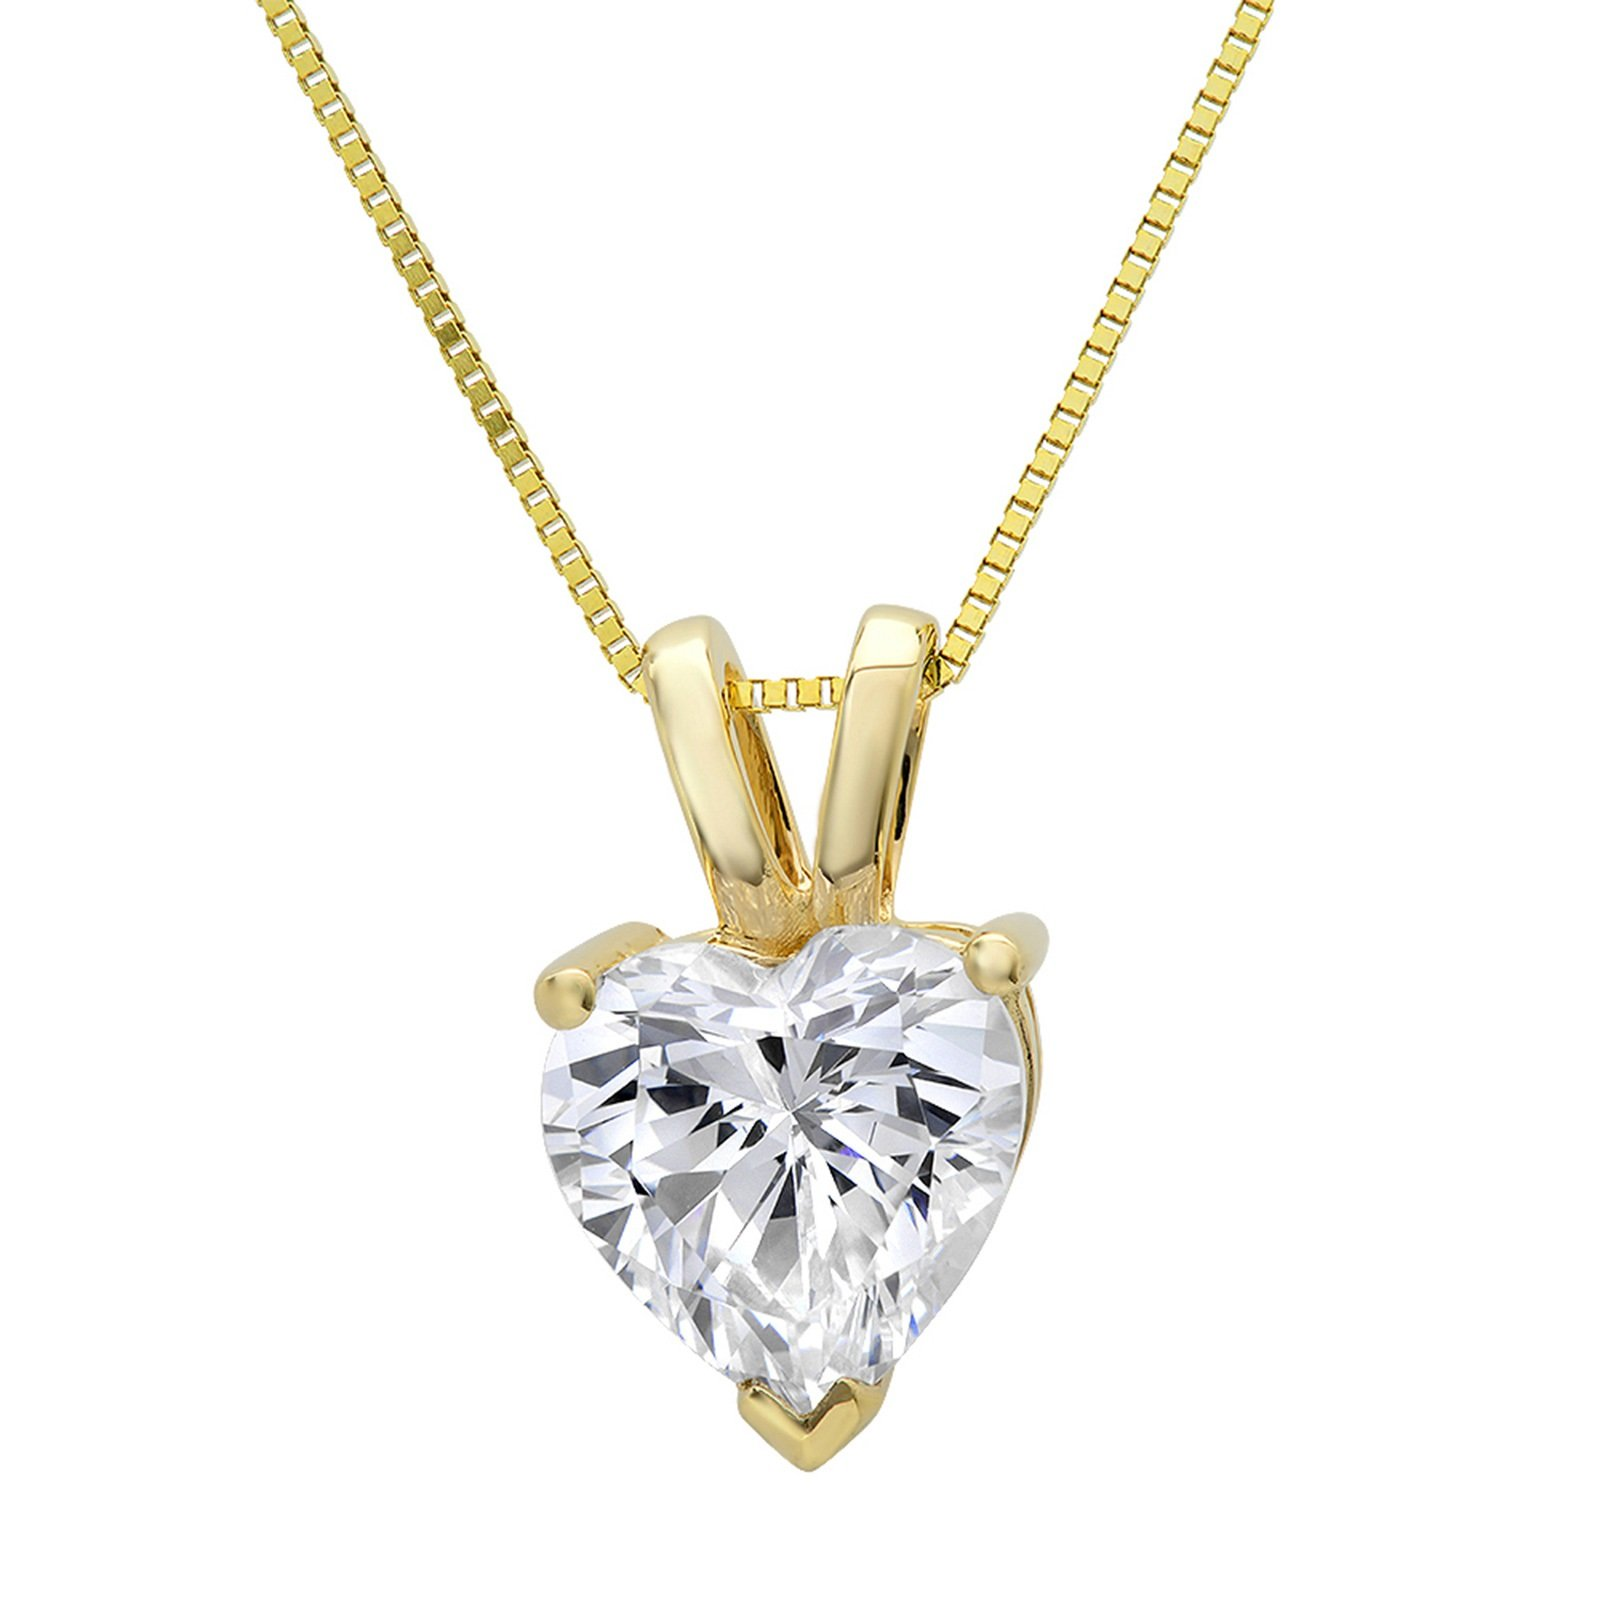 1.10 CT Heart Cut CZ Real Solid 14K Yellow Gold Solitaire Pendant Box Necklace 16'' Chain